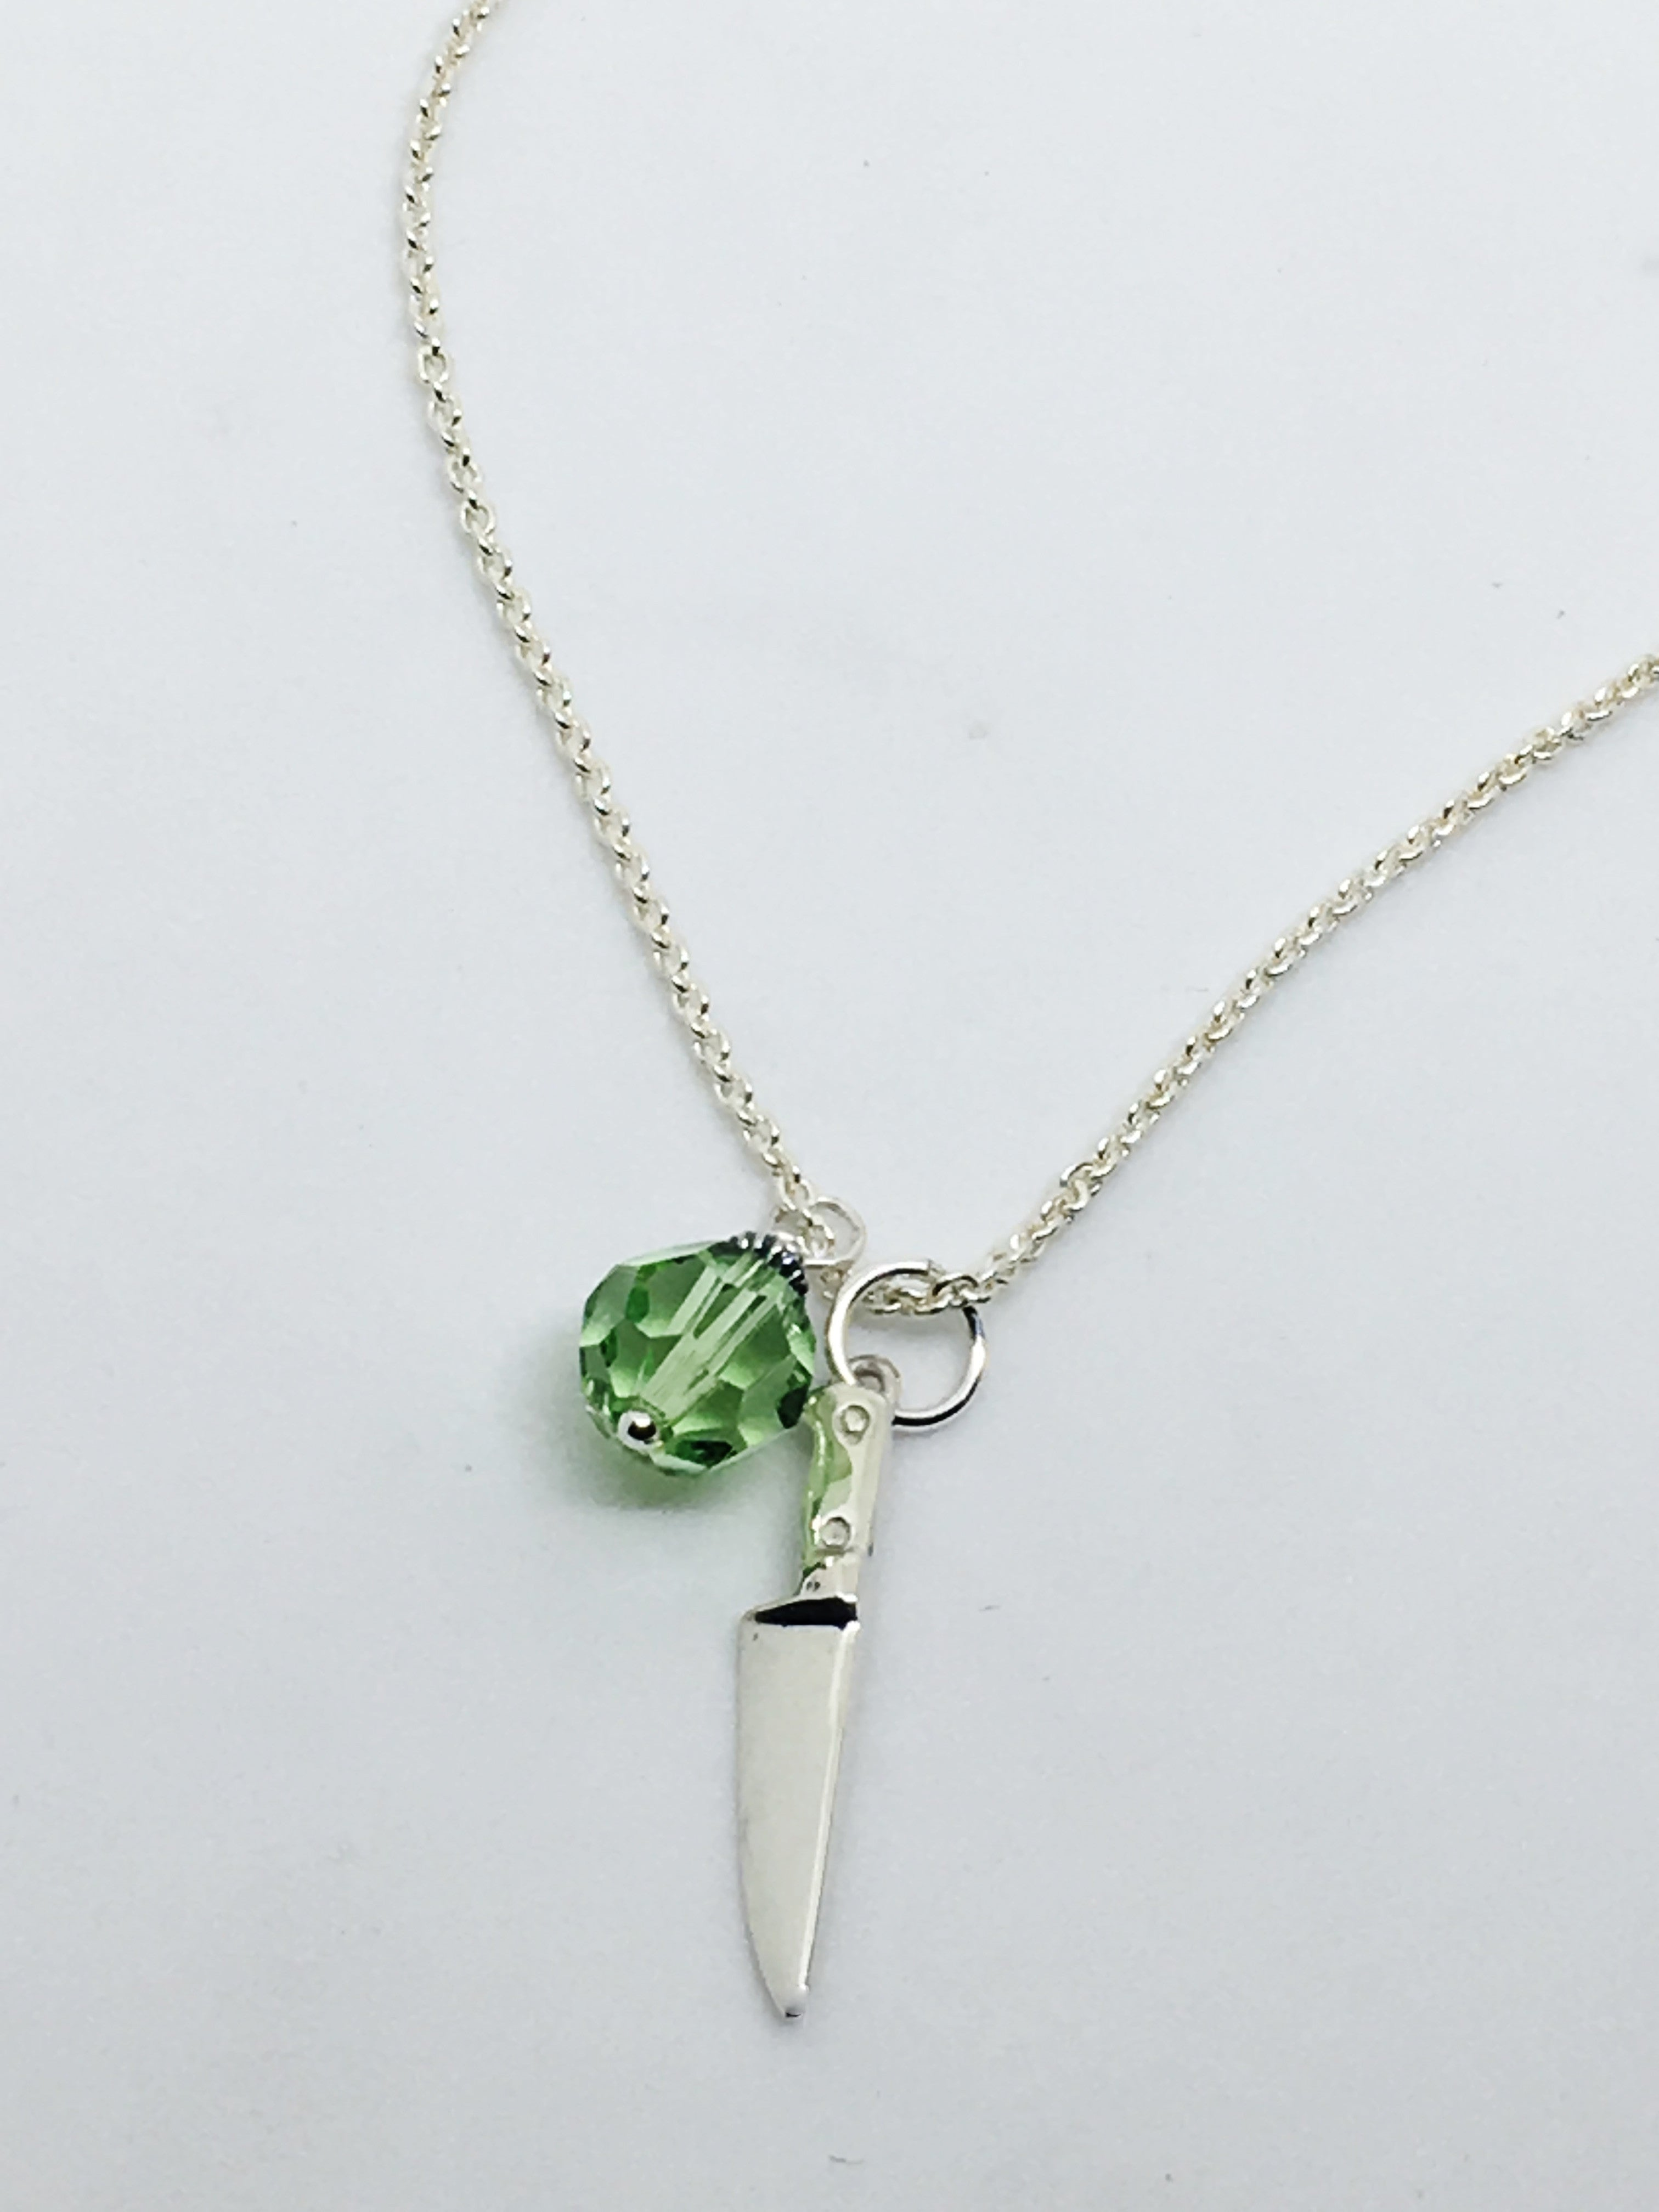 Chef's Knife Pendant Necklace with Green Swarovski Crystal Charm